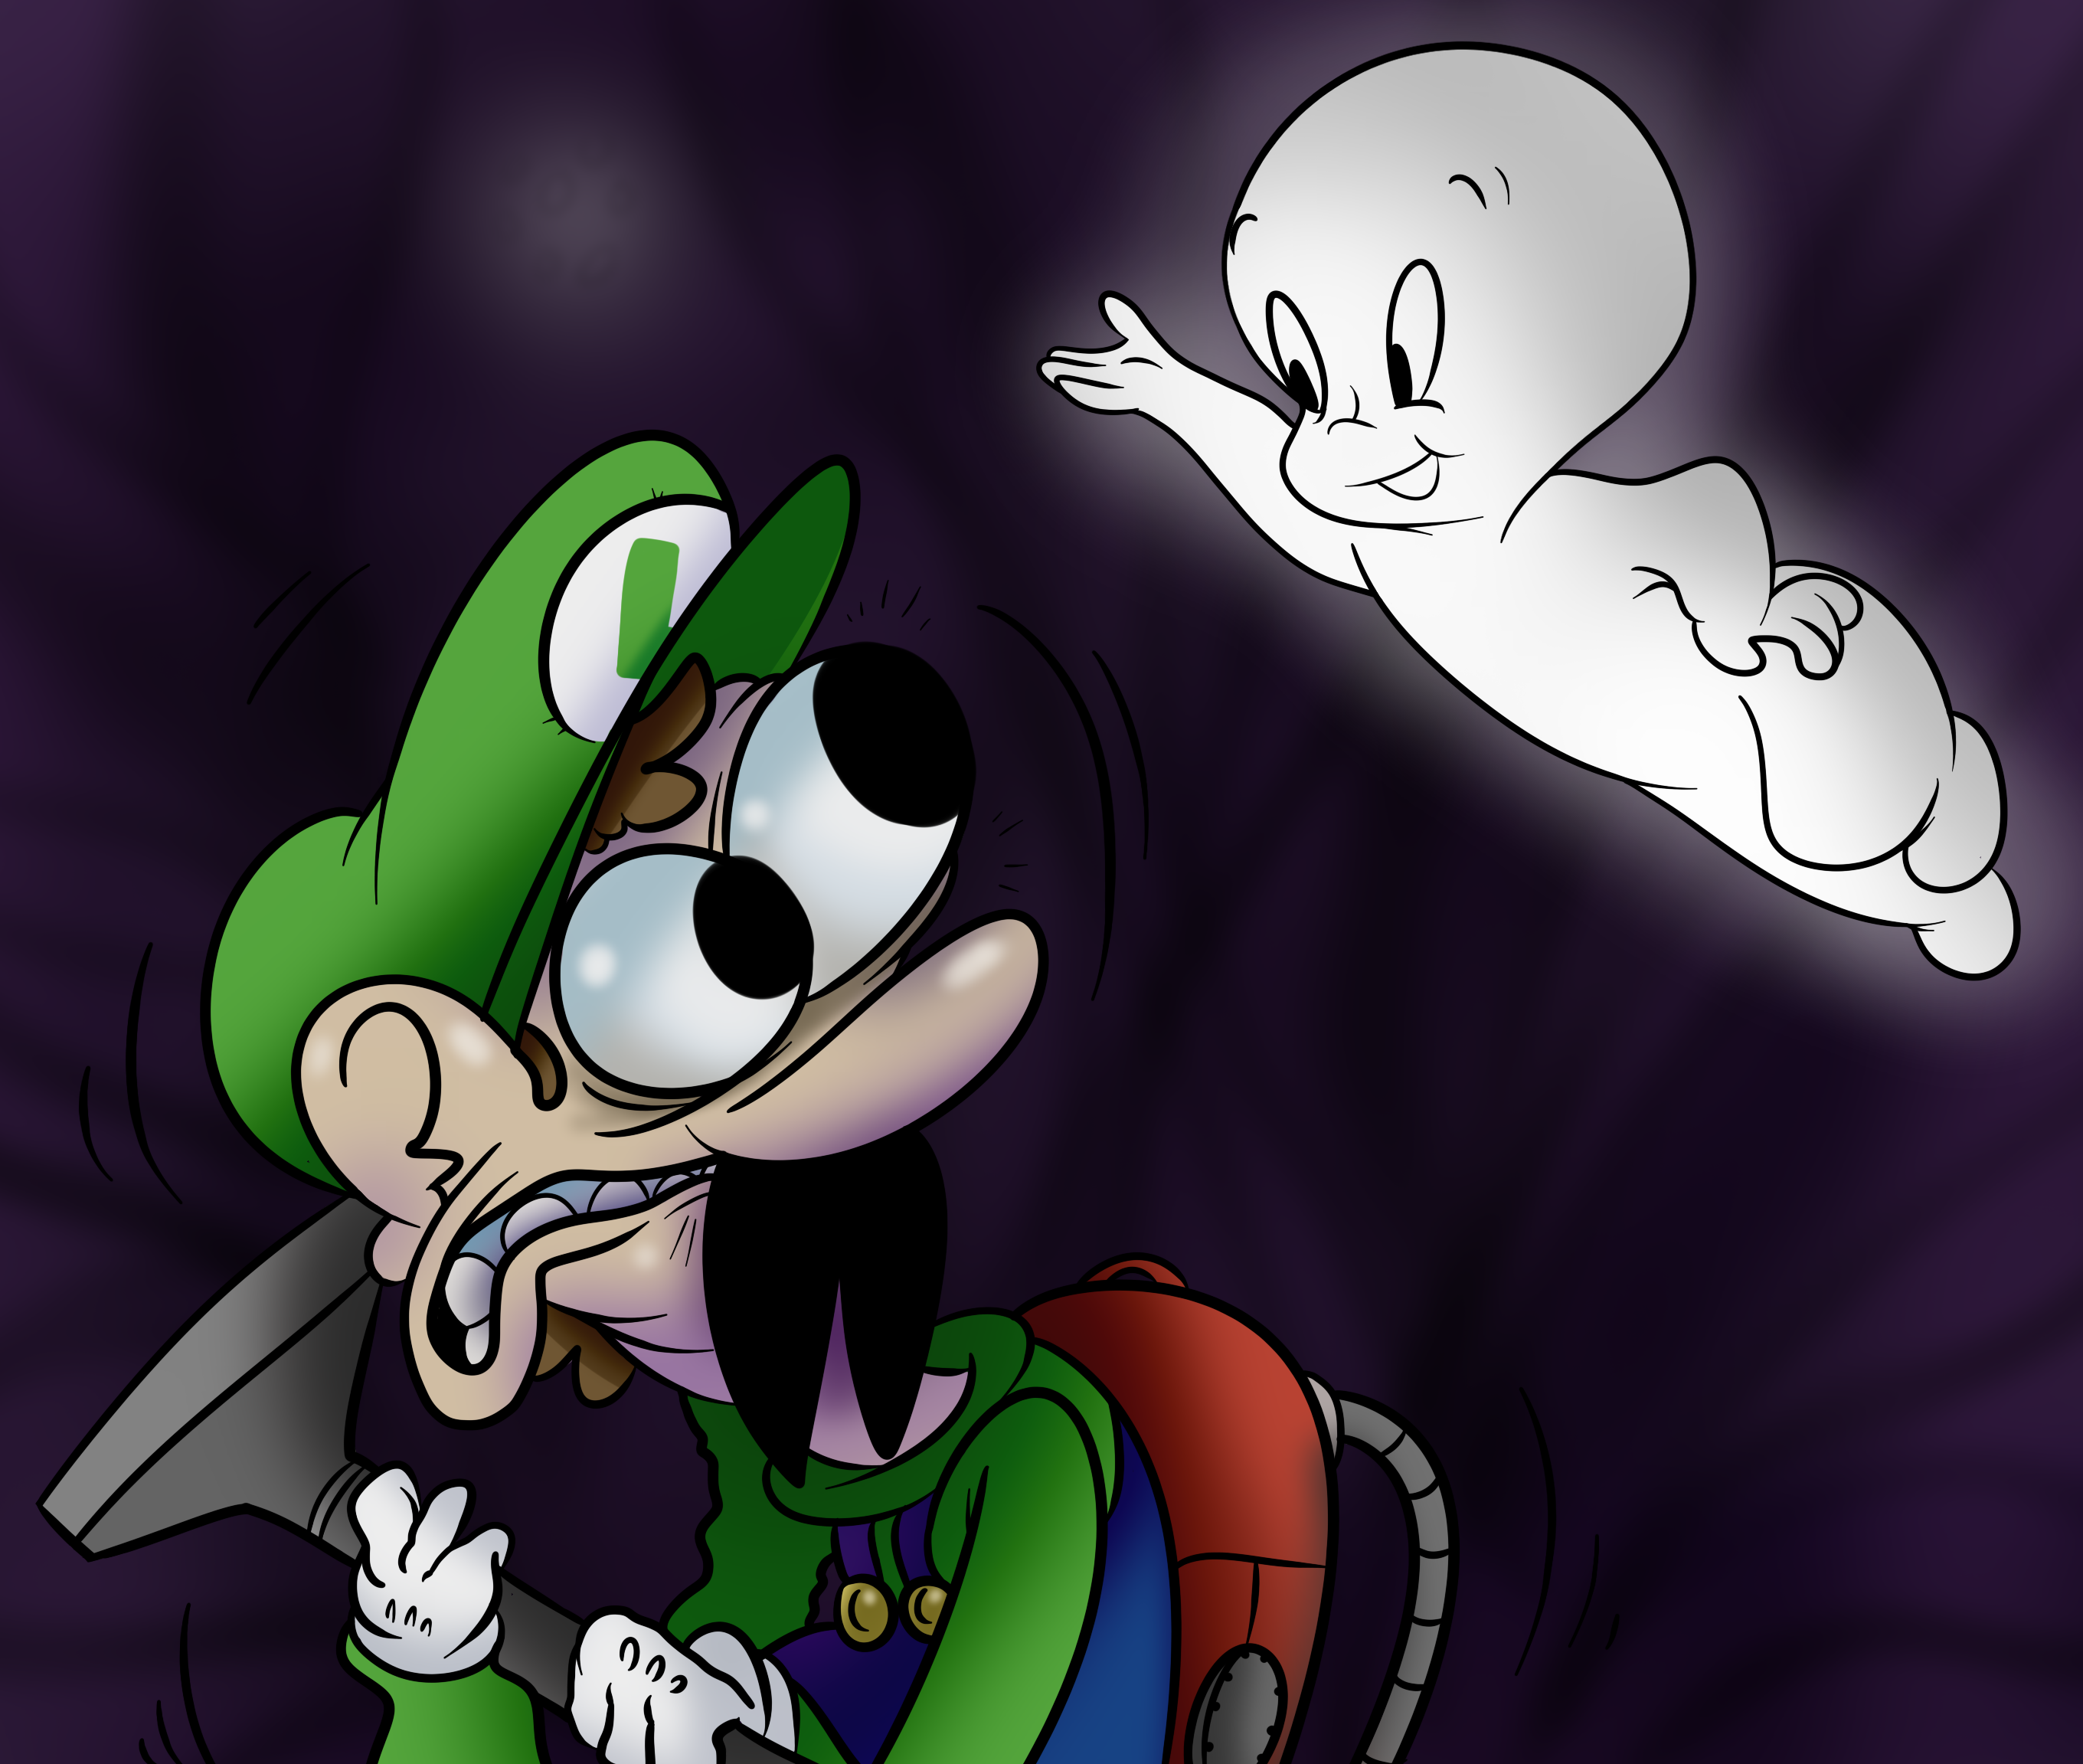 Luigi and the Friendly Ghost